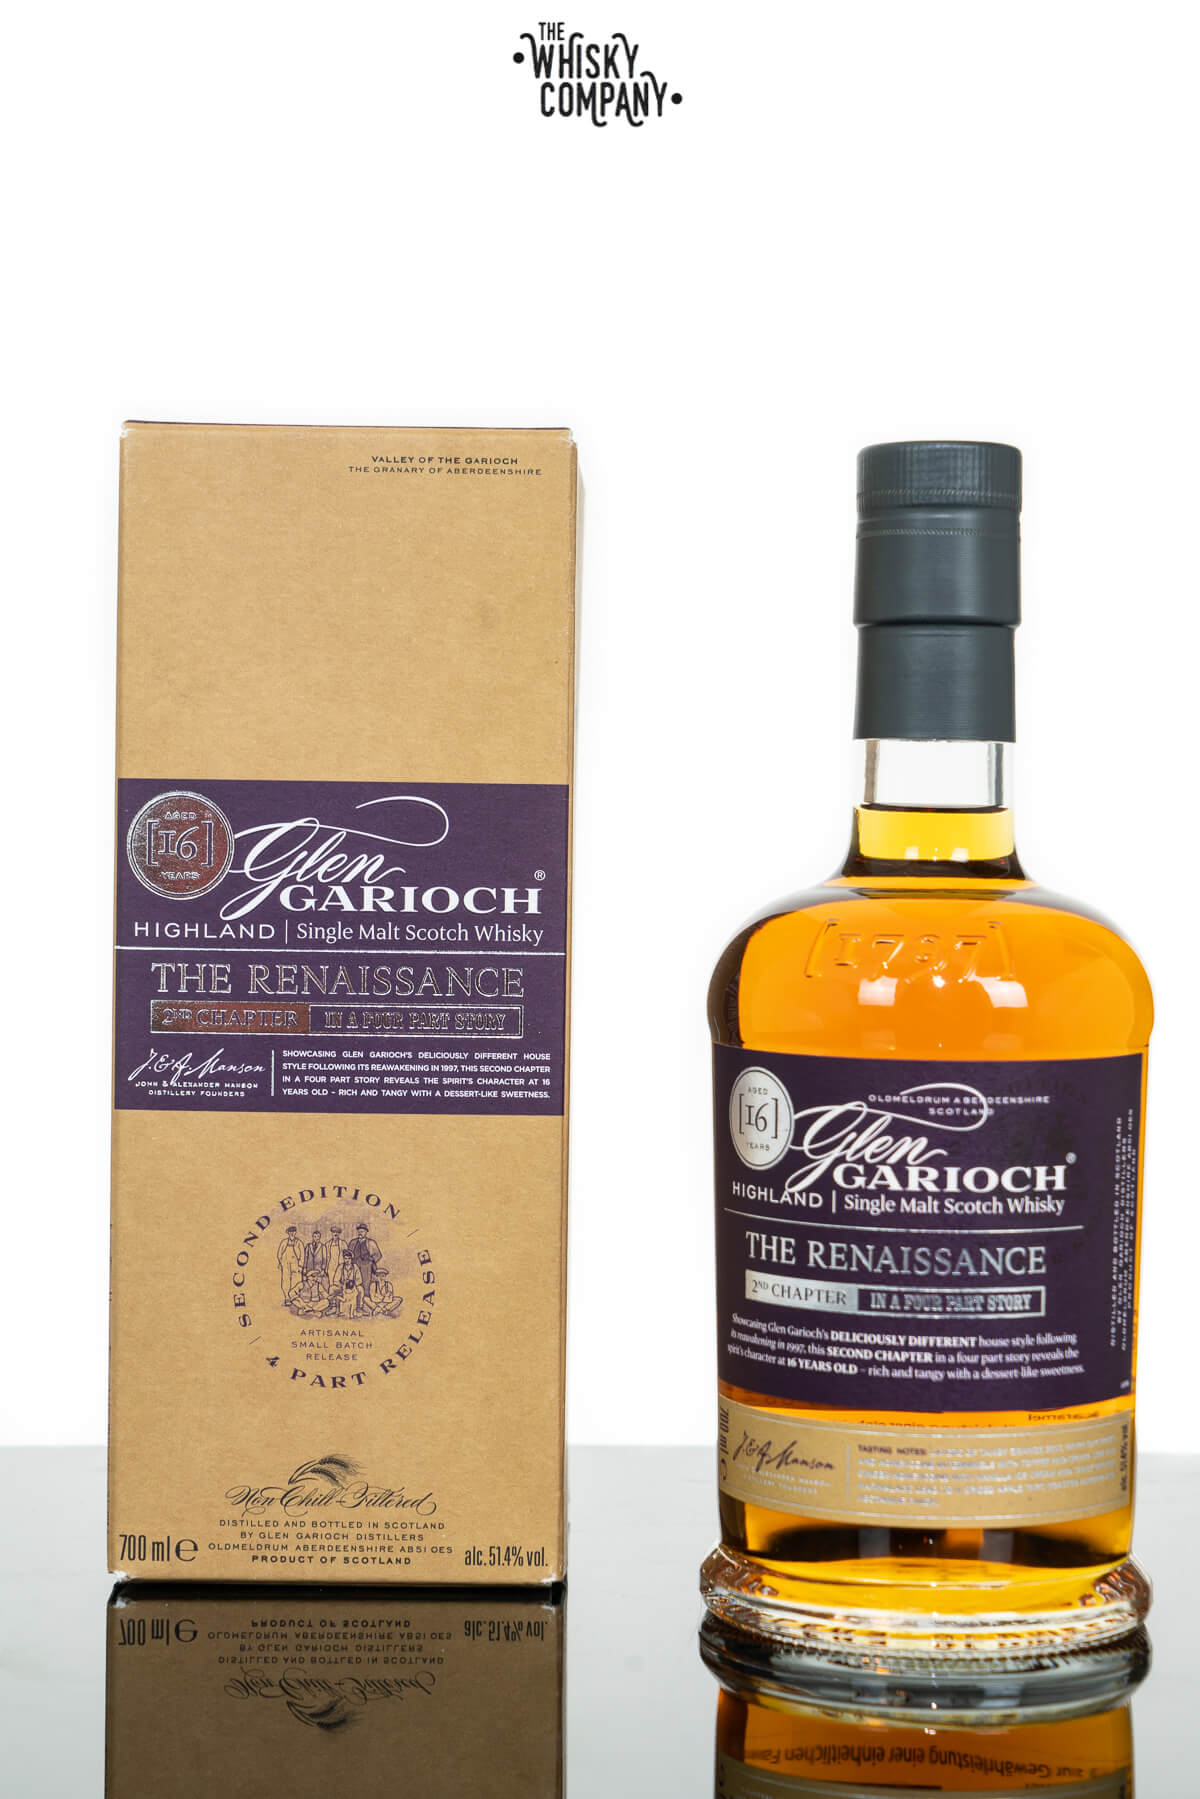 Glen Garioch 16 Years old The Renaissance Single Malt Scotch Whisky (700ml)